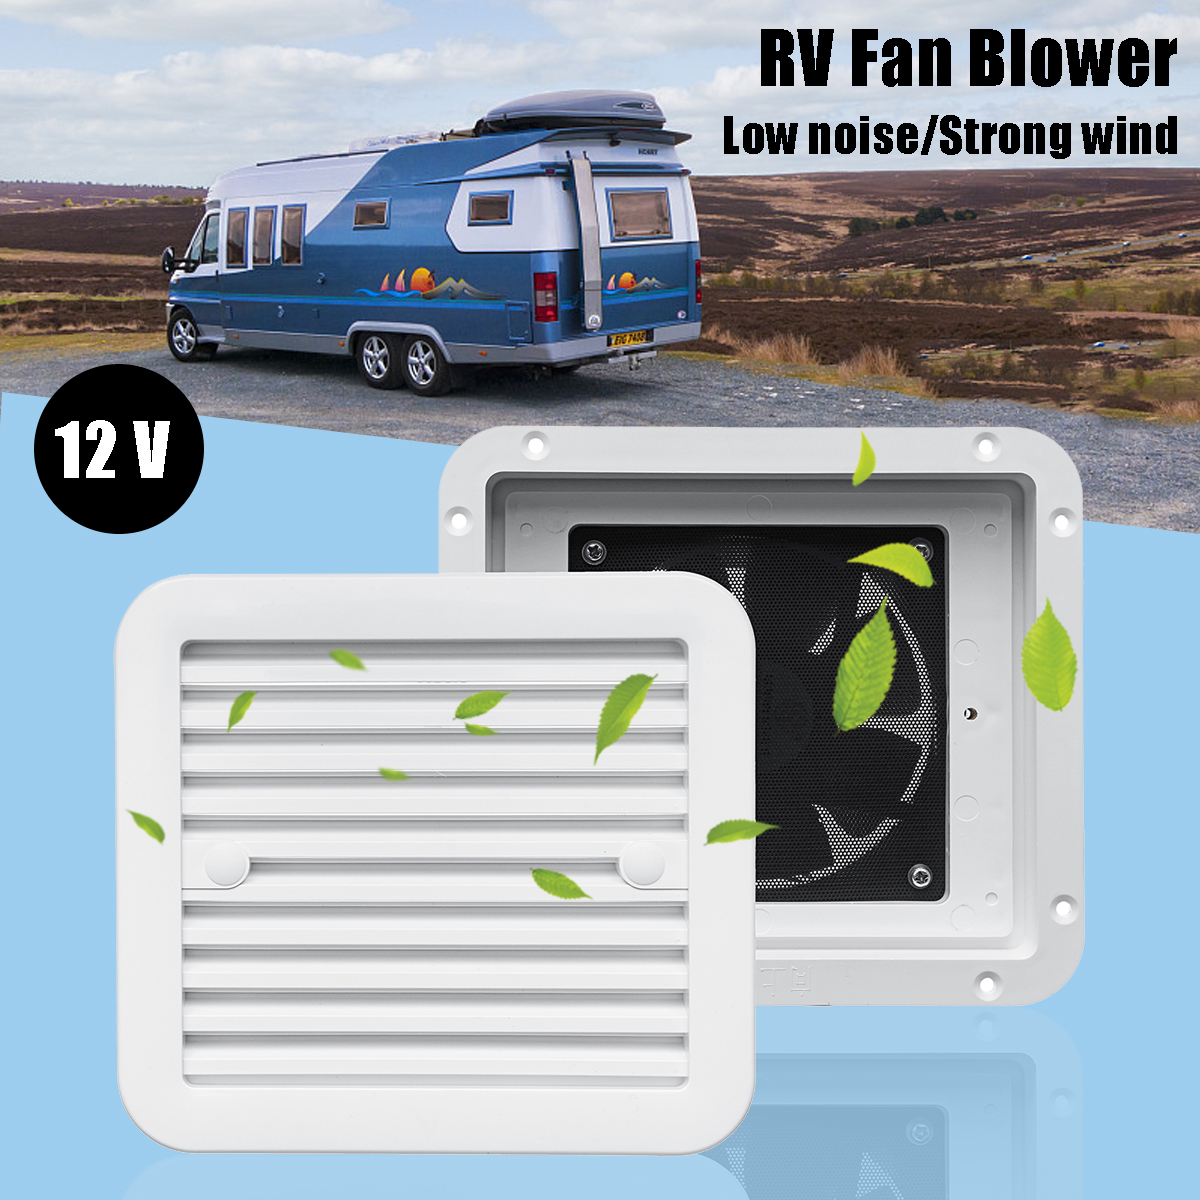 RV Trailer Caravan Side Air Vent Ventilation Blade Fan Blower Cooling 3 Types Two-Way One-Way Wind One-Way Mute 12V Low Noise